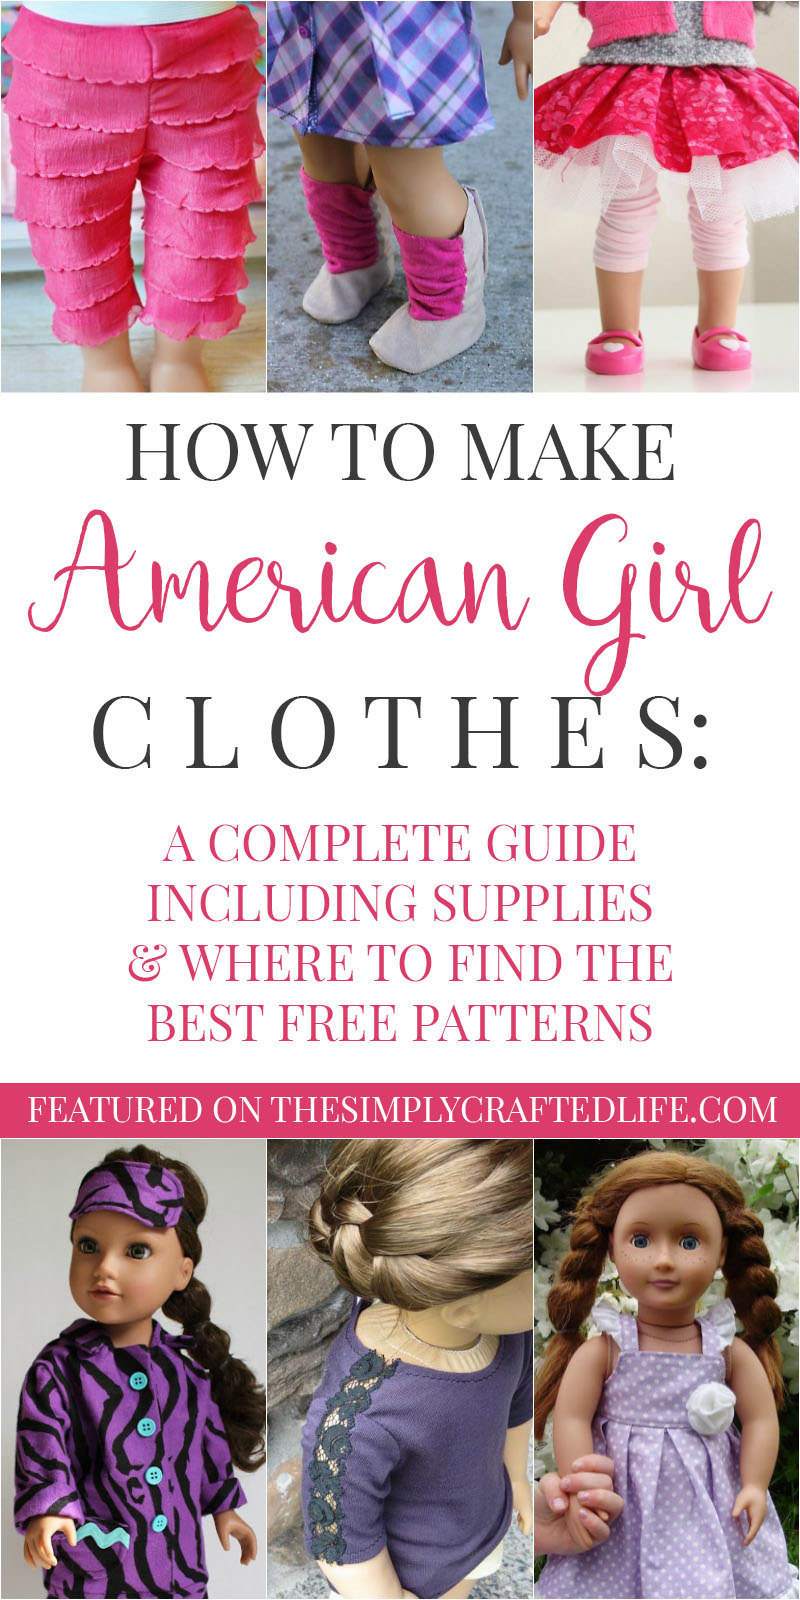 graphic regarding American Girl Clothes Patterns Free Printable referred to as How in the direction of Crank out American Lady Doll Garments: A Lead toward Absolutely free AG